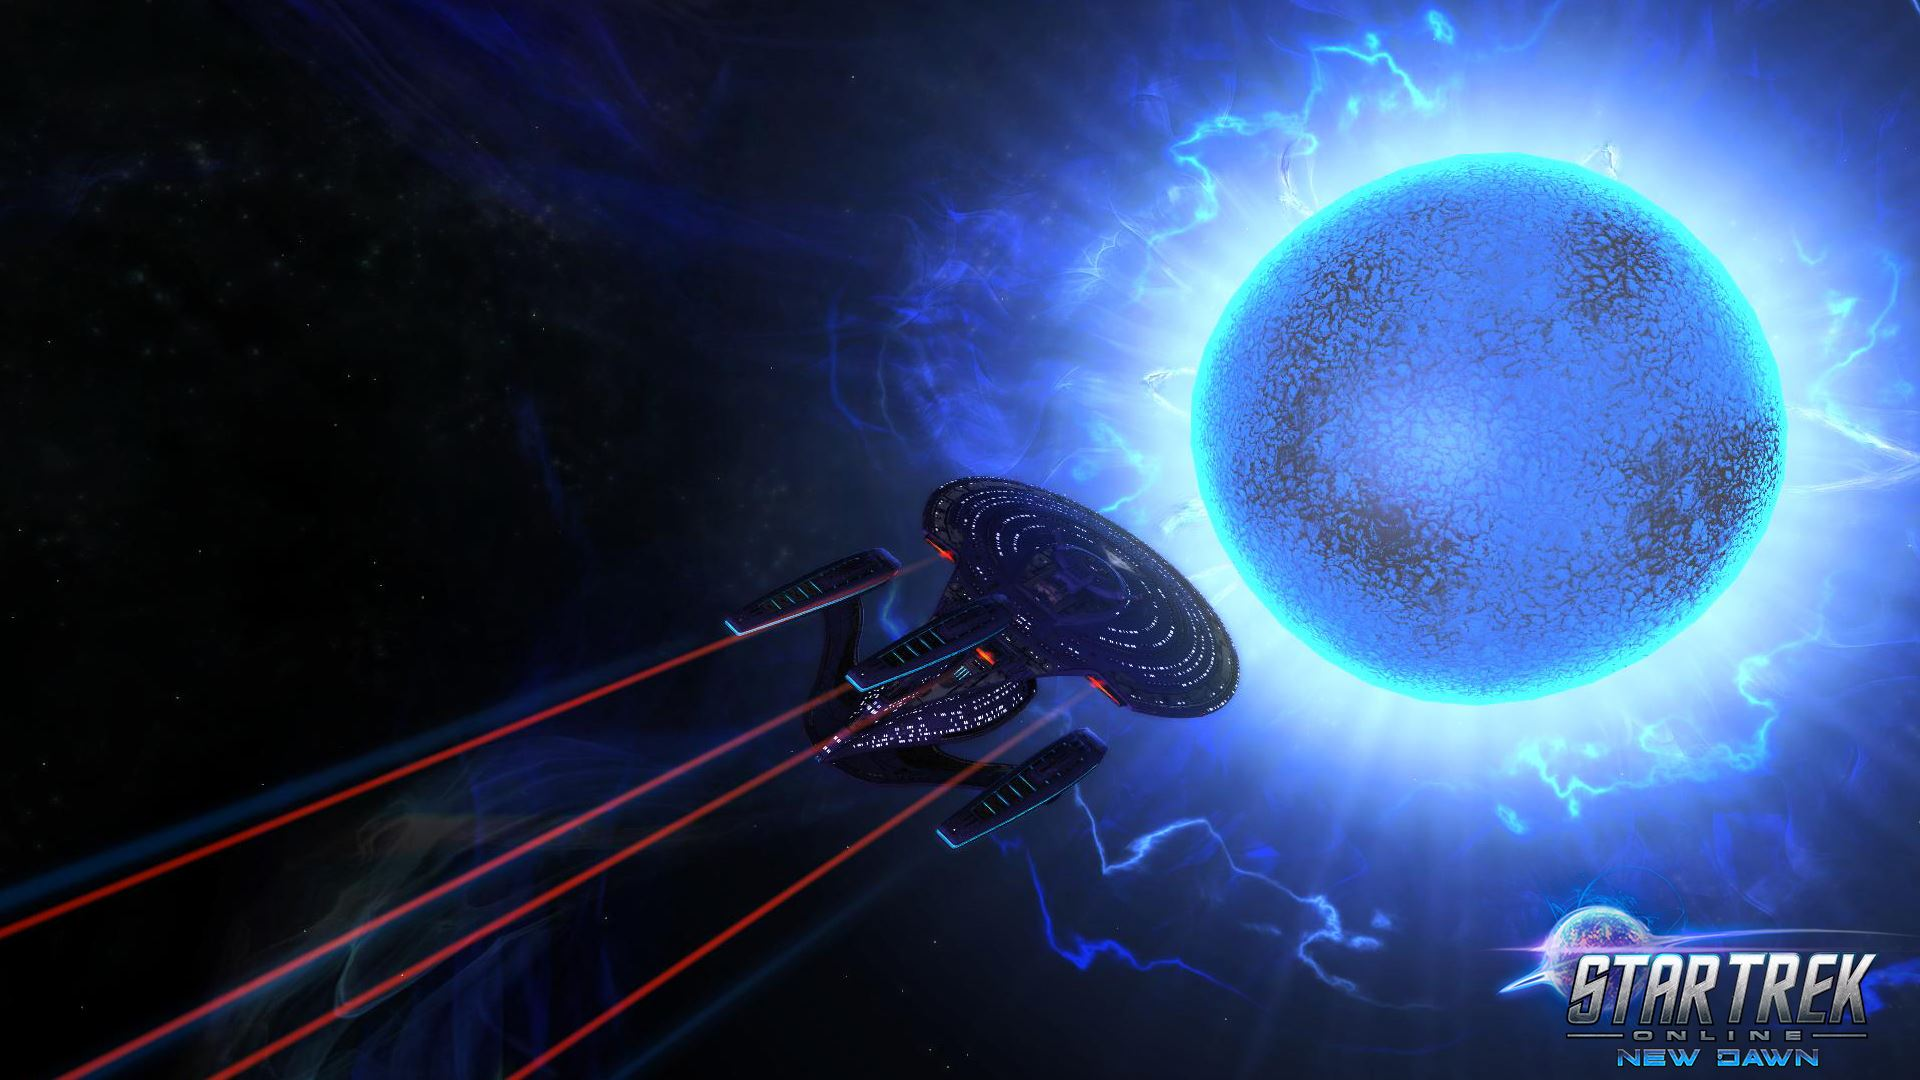 Star Trek Online New Dawn Schiff